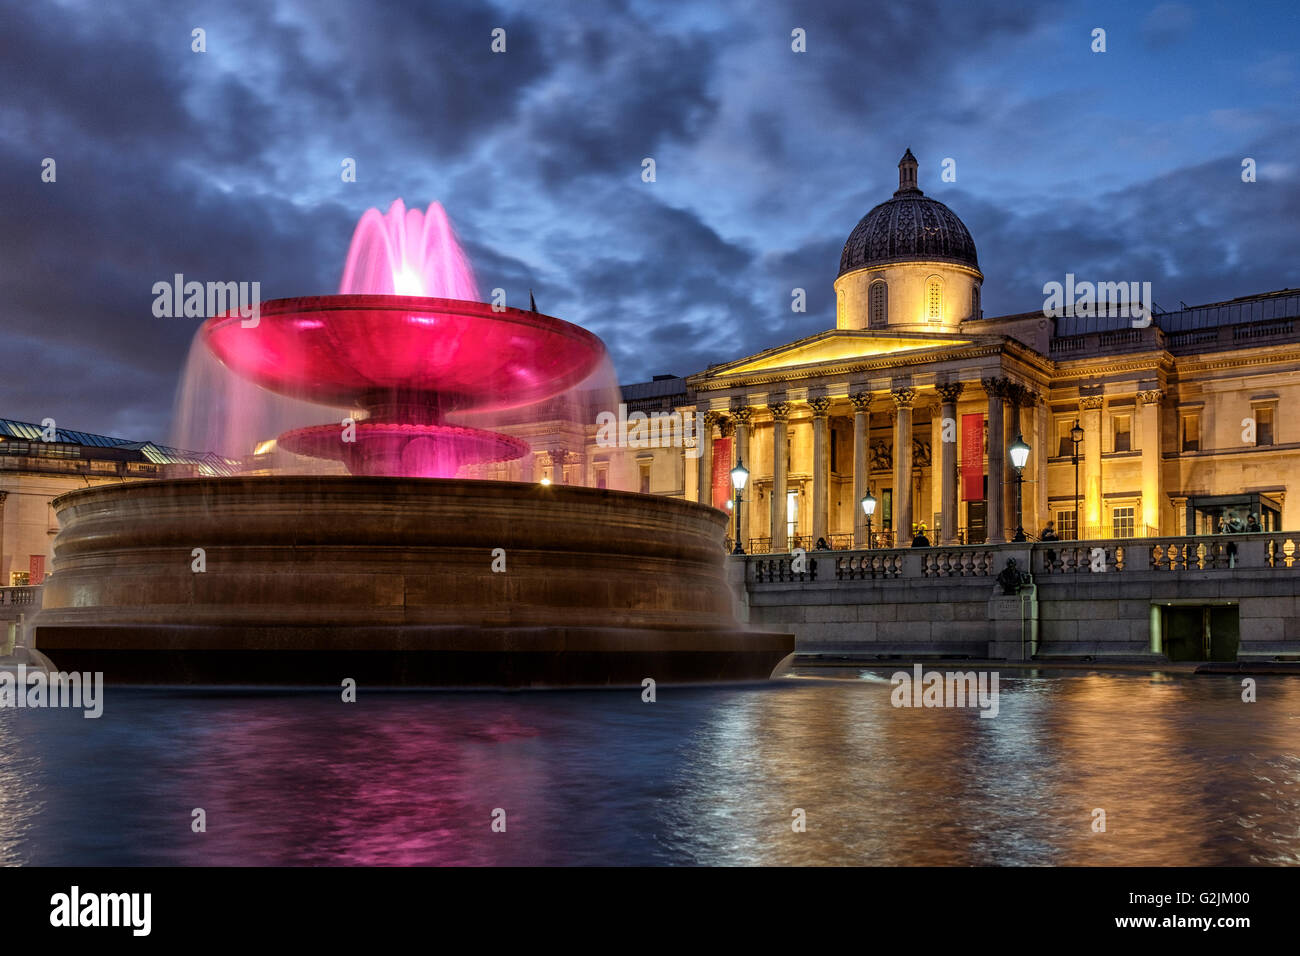 Floodlit Fountain and The National Galleryat night,Trafalgar Square,London,England - Stock Image